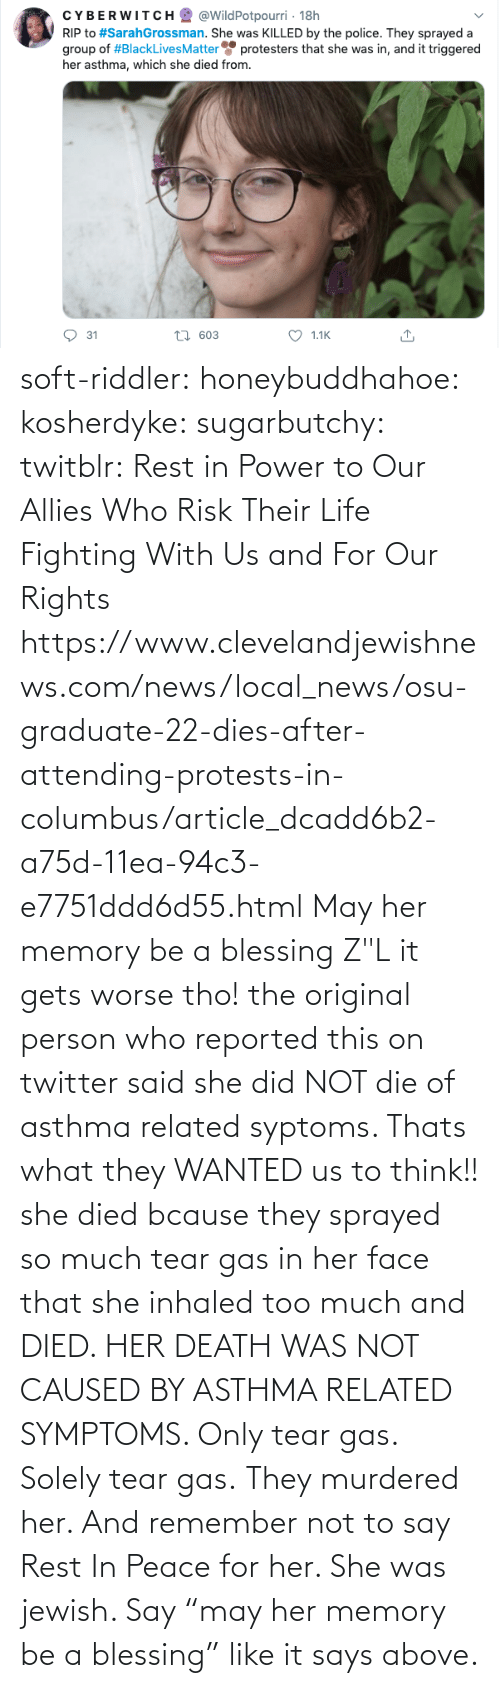 "their: soft-riddler:  honeybuddhahoe:  kosherdyke:  sugarbutchy:  twitblr: Rest in Power to Our Allies Who Risk Their Life Fighting With Us and For Our Rights https://www.clevelandjewishnews.com/news/local_news/osu-graduate-22-dies-after-attending-protests-in-columbus/article_dcadd6b2-a75d-11ea-94c3-e7751ddd6d55.html    May her memory be a blessing Z""L  it gets worse tho! the original person who reported this on twitter said she did NOT die of asthma related syptoms. Thats what they WANTED us to think!! she died bcause they sprayed so much tear gas in her face that she inhaled too much and DIED. HER DEATH WAS NOT CAUSED BY ASTHMA RELATED SYMPTOMS. Only tear gas. Solely tear gas. They murdered her.     And remember not to say Rest In Peace for her. She was jewish. Say ""may her memory be a blessing"" like it says above."